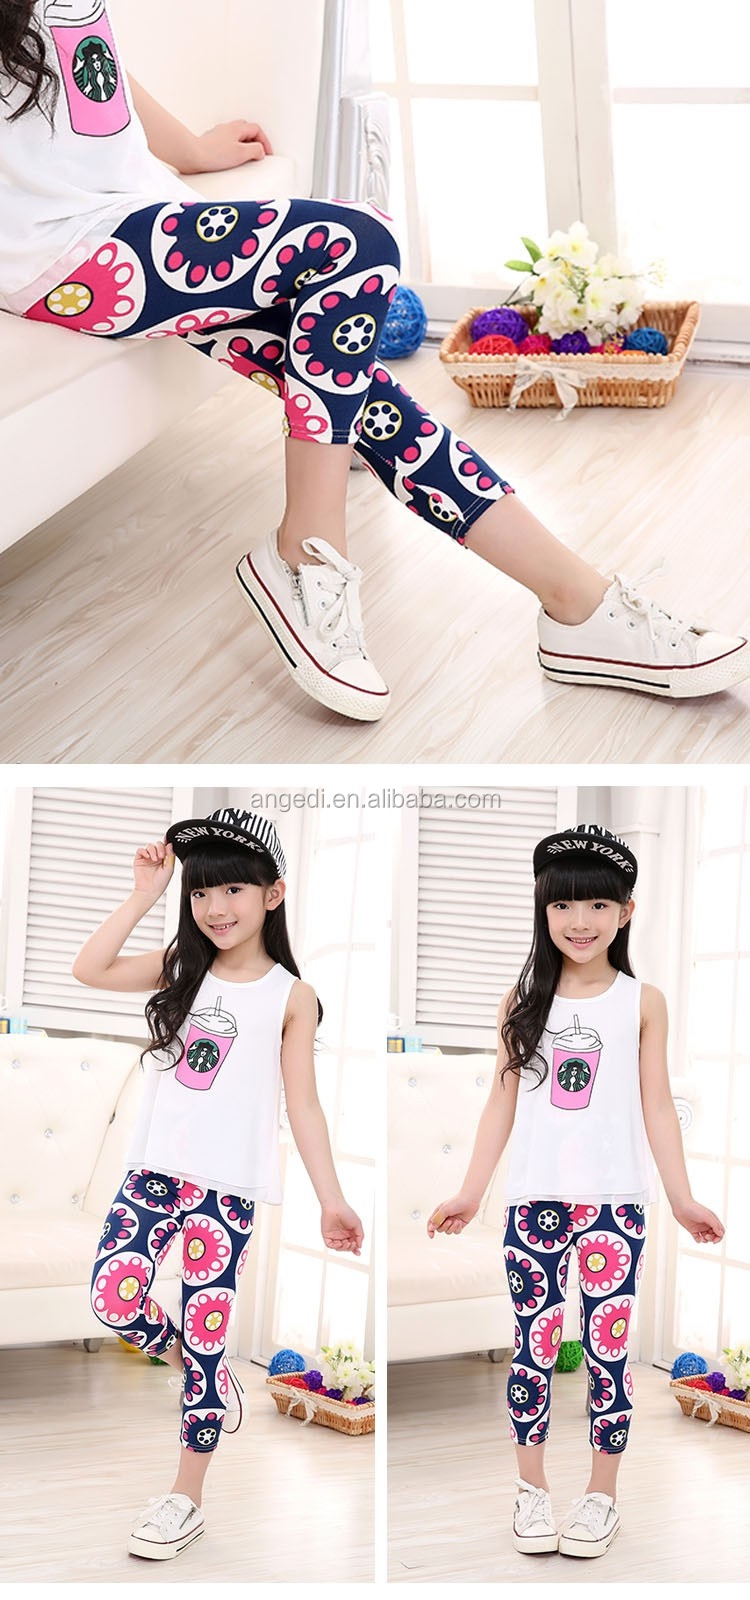 a57cb9d9bc7e0c kids wear new fashion girls capri leggings printed flowers girls floral  printed 3/4 length